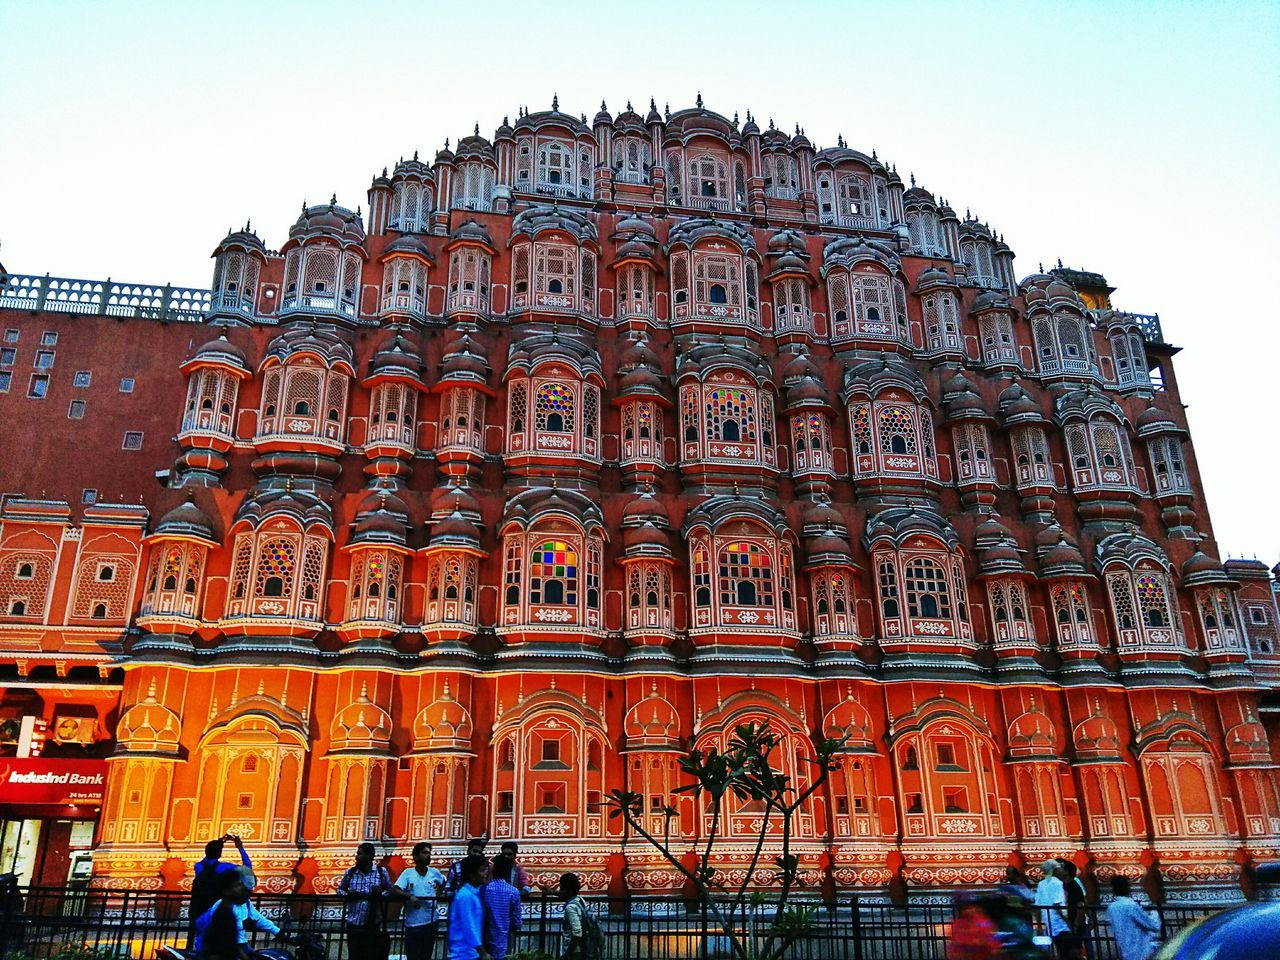 Hawa mahal Jaipur Travel Destinations History Tourism Architecture Low Angle View Travel Vacations Built Structure Business Finance And Industry Outdoors Day Building Exterior People Sky Nature Hawa Mahal Jaipur Jaipurdiaries Jaipur Rajasthan Jaipurcityblog Jaipur Tourist Place Jaipurdiaries🎀 Hawamahaljaipur